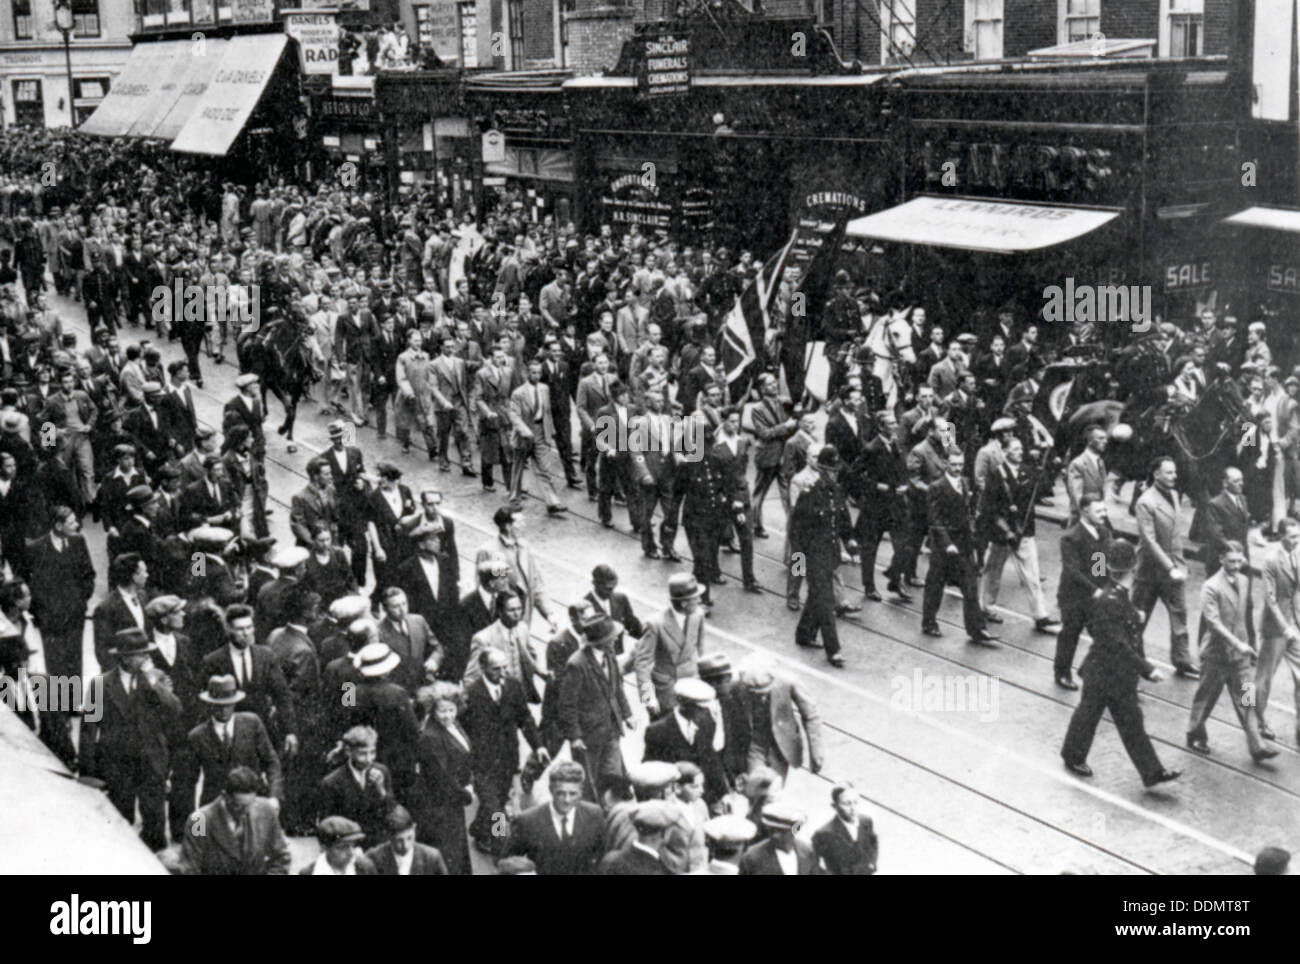 Street March through East London, Sir Oswald Mosley's Union Movement, 1936. - Stock Image